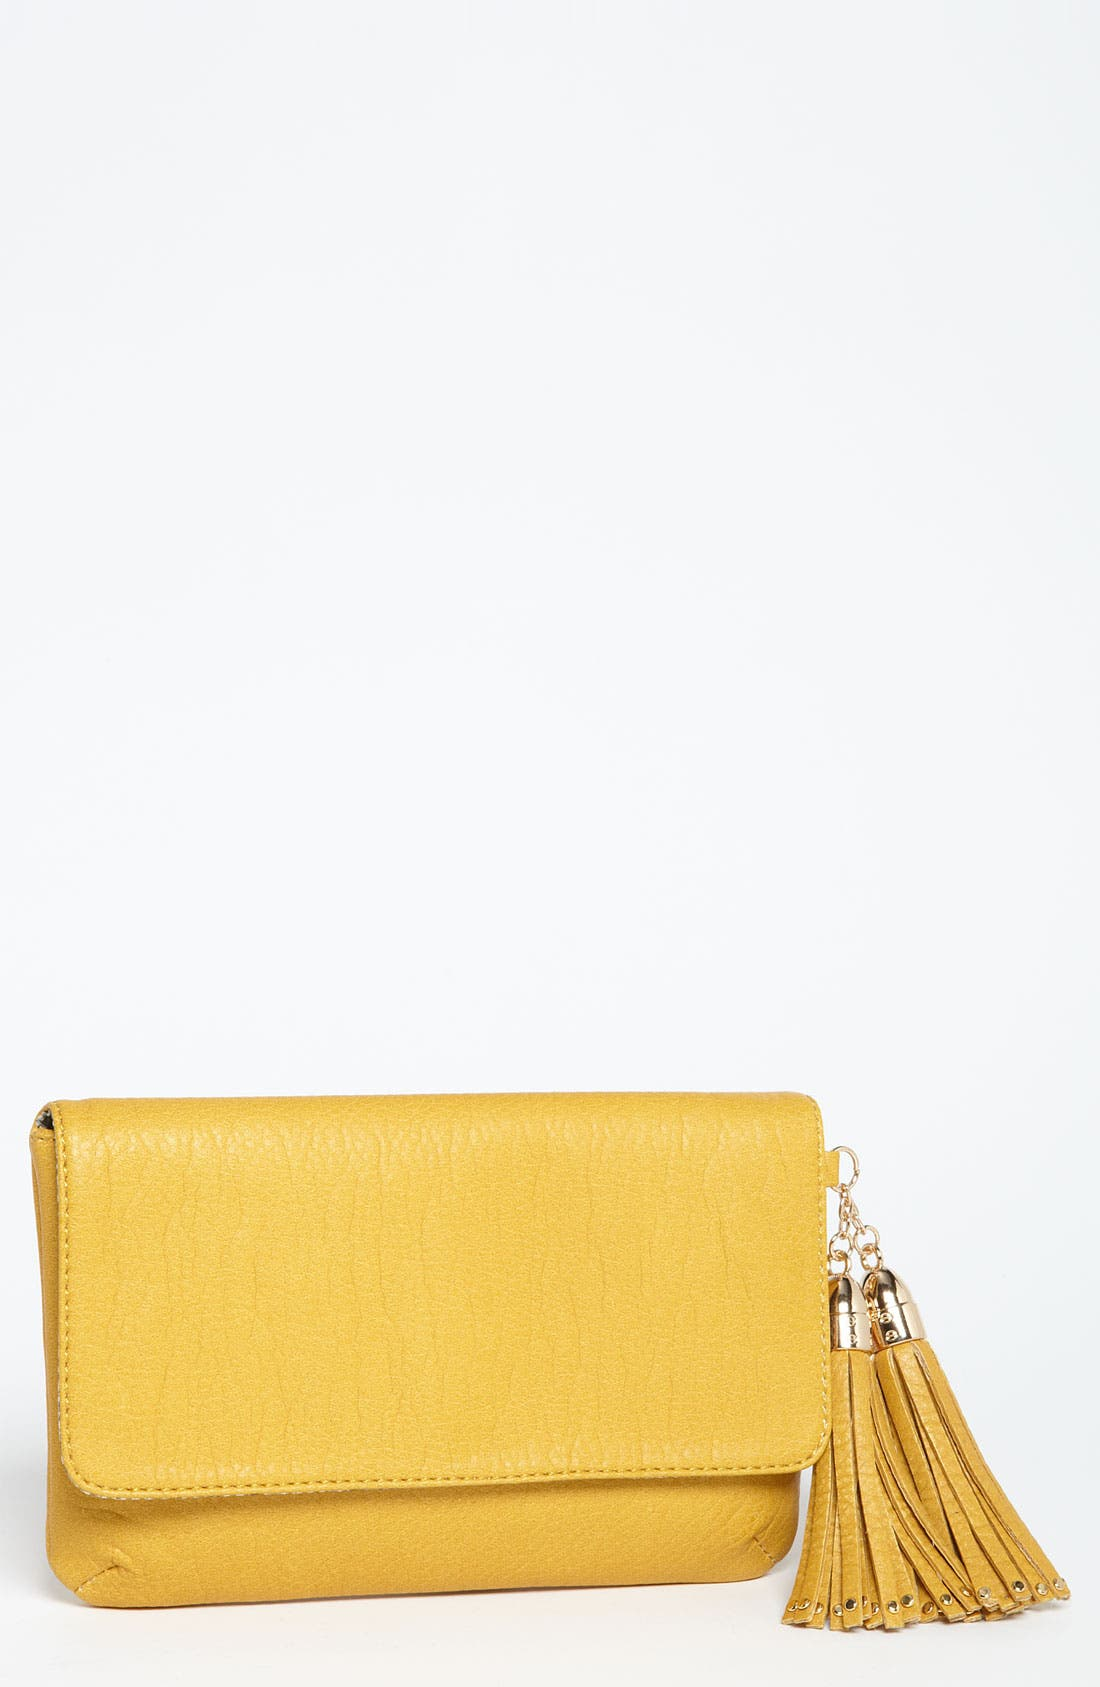 Alternate Image 1 Selected - Deux Lux 'Juno' Clutch